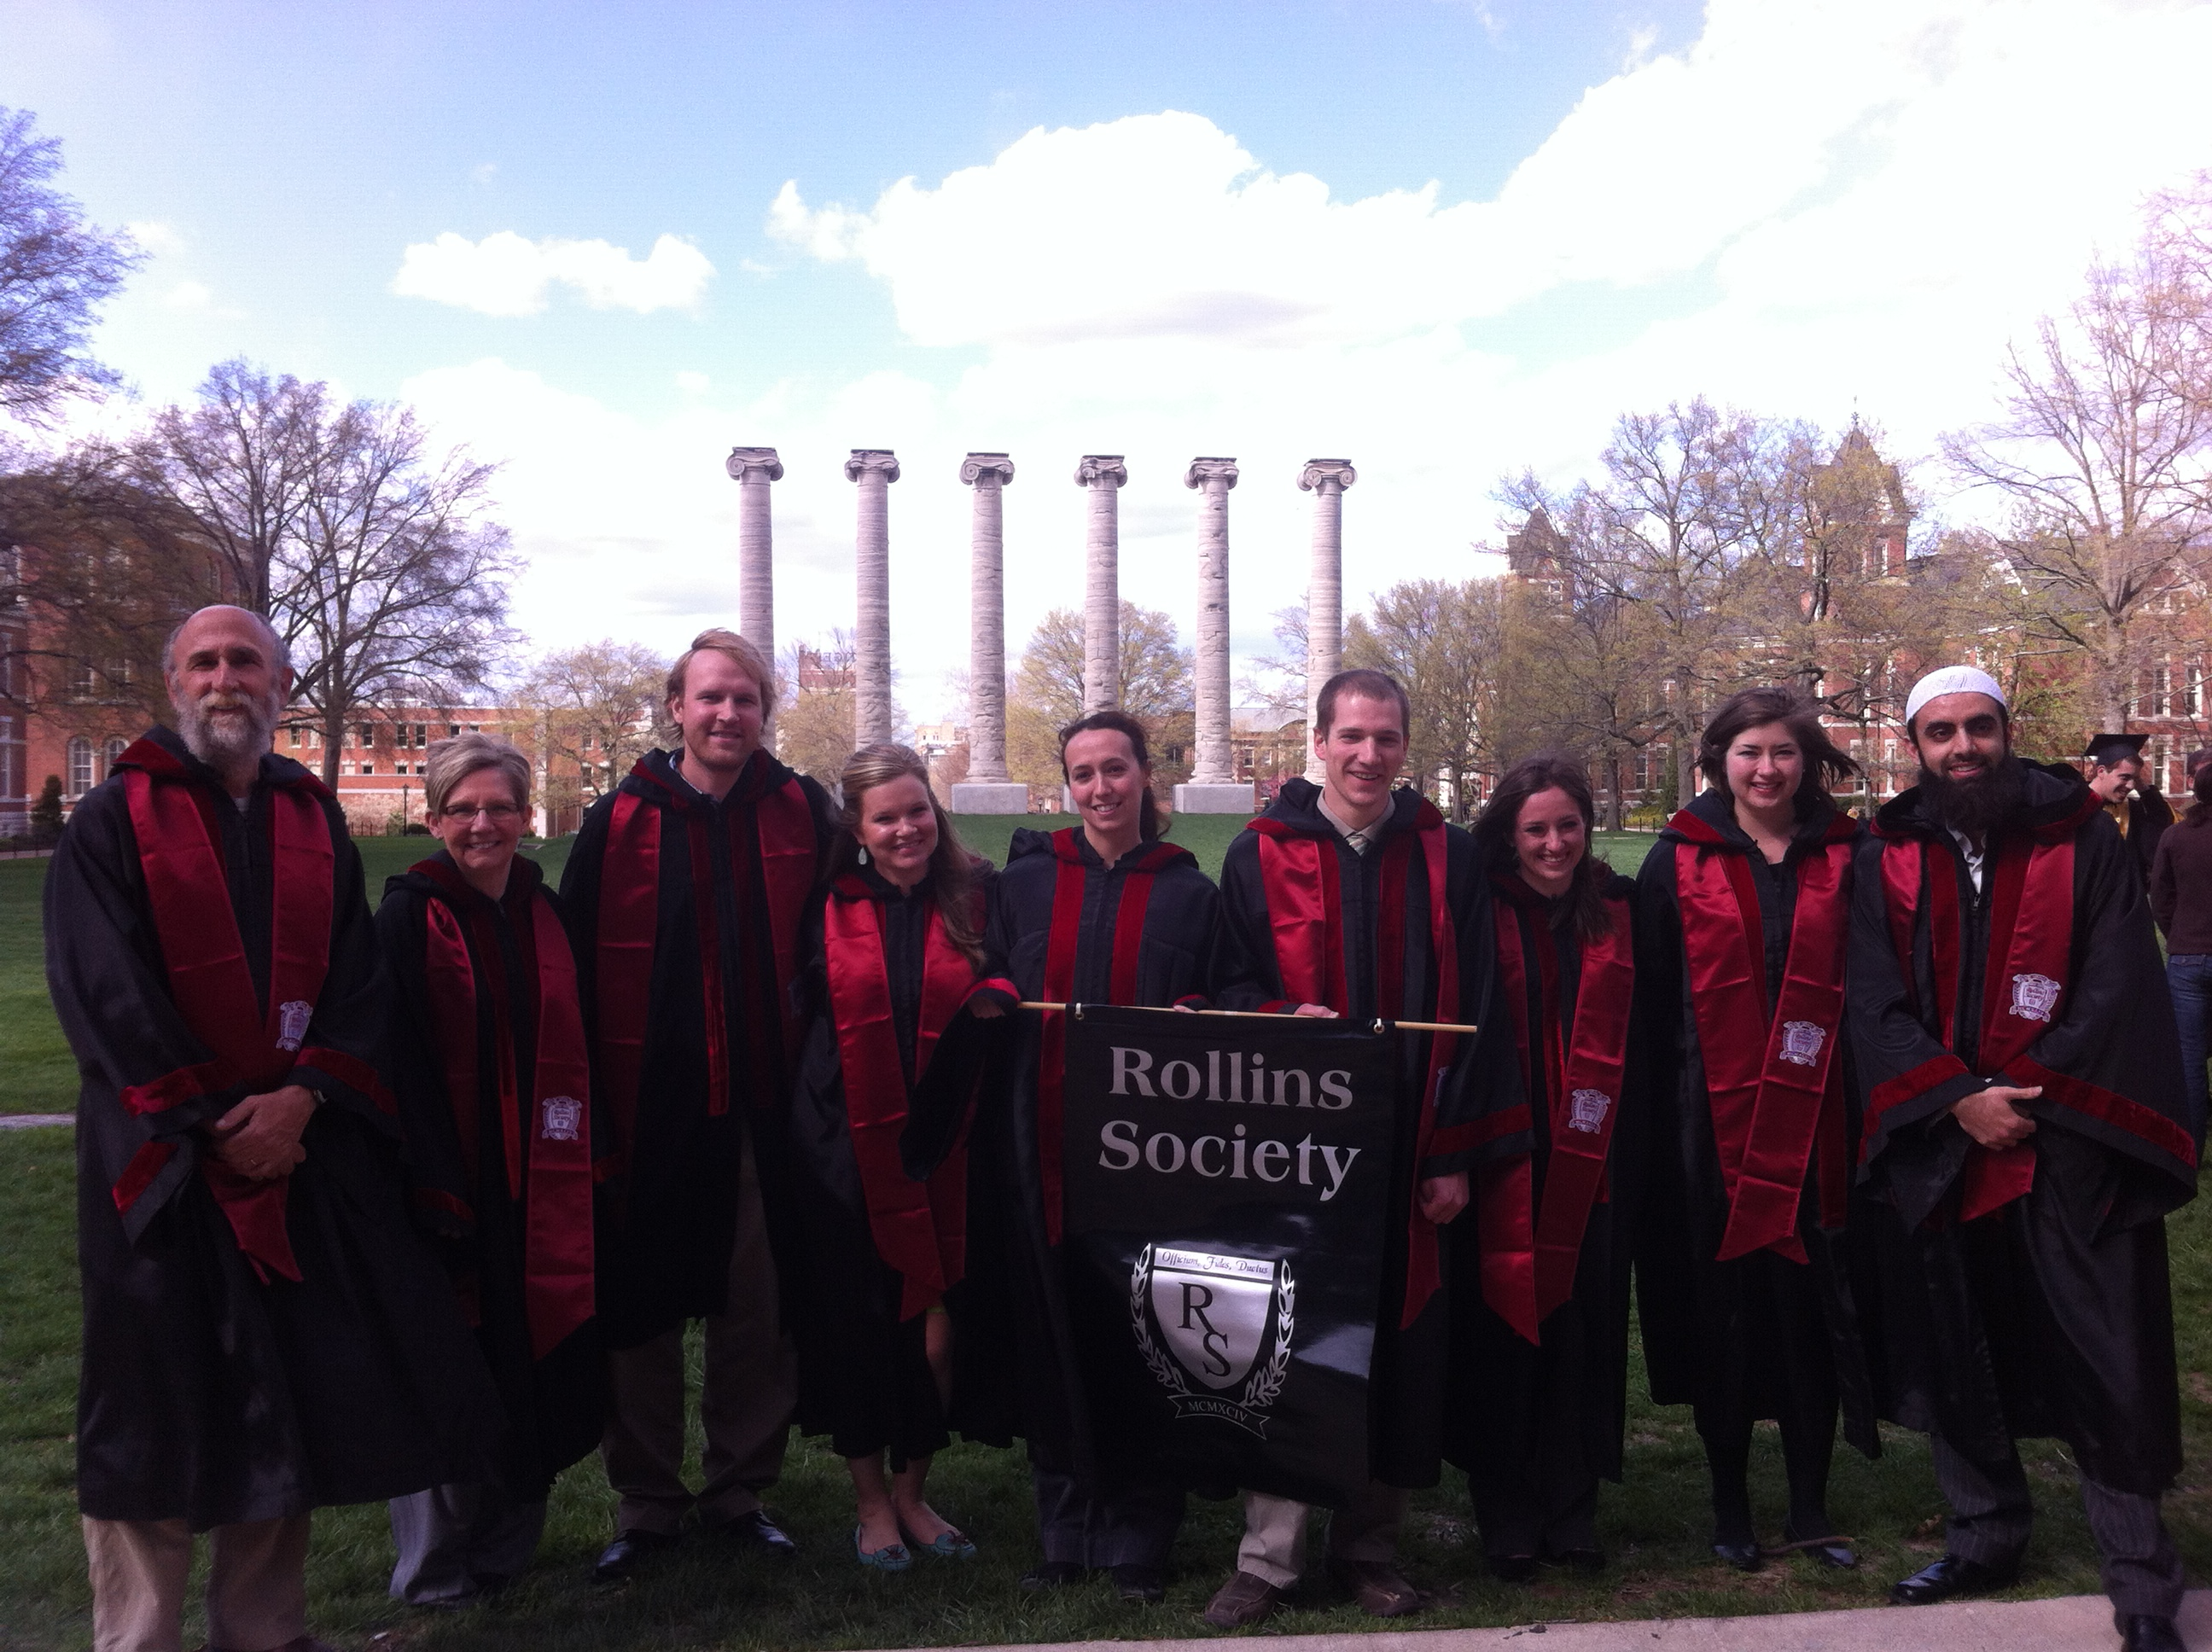 Rollins Society Class of 2013